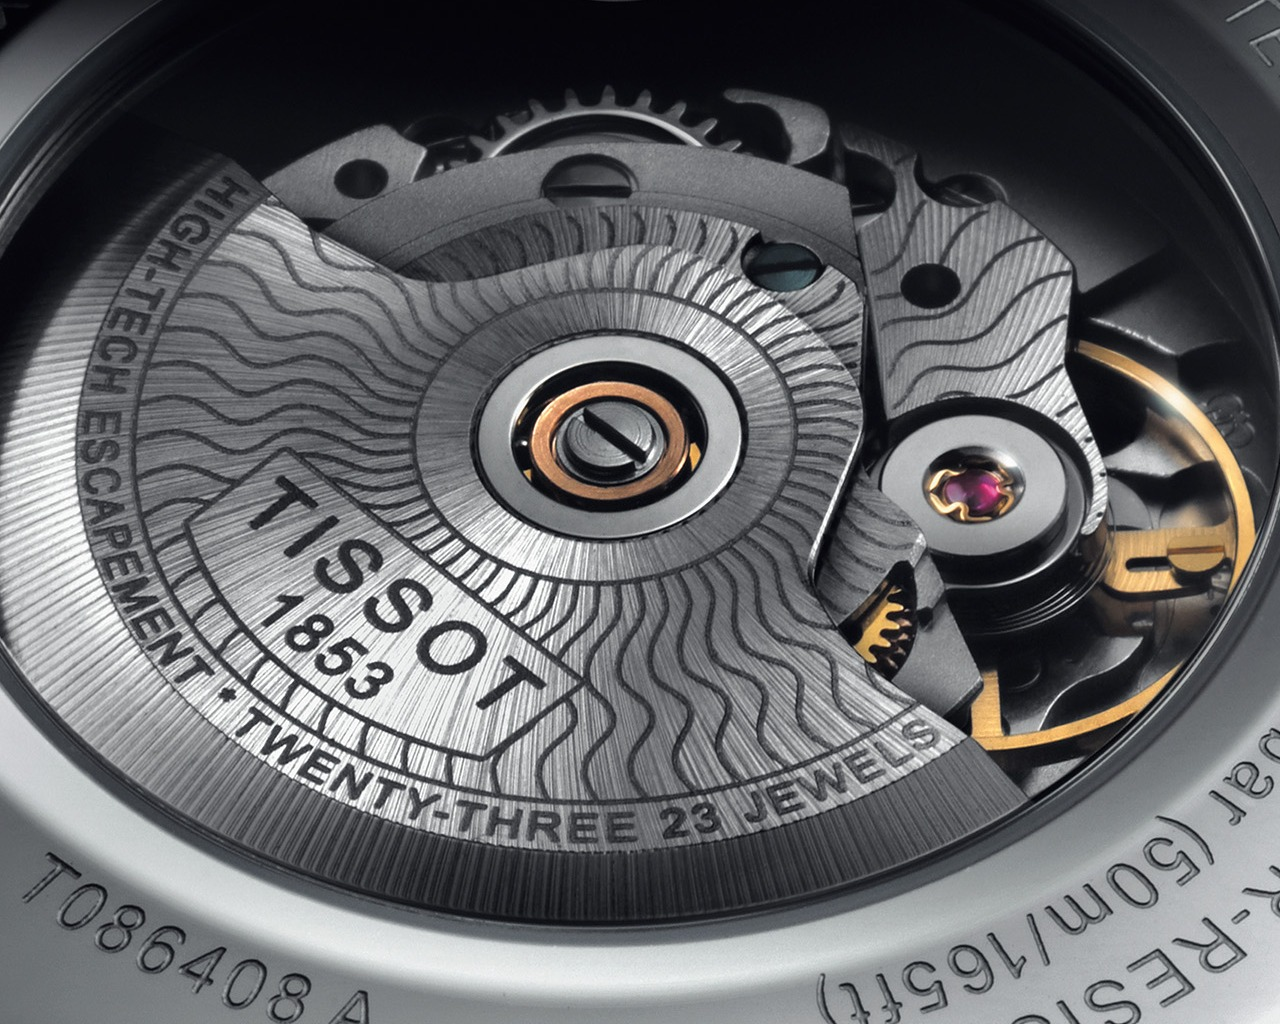 baselworld-2013-tissot-luxury-automatique_0-100 4